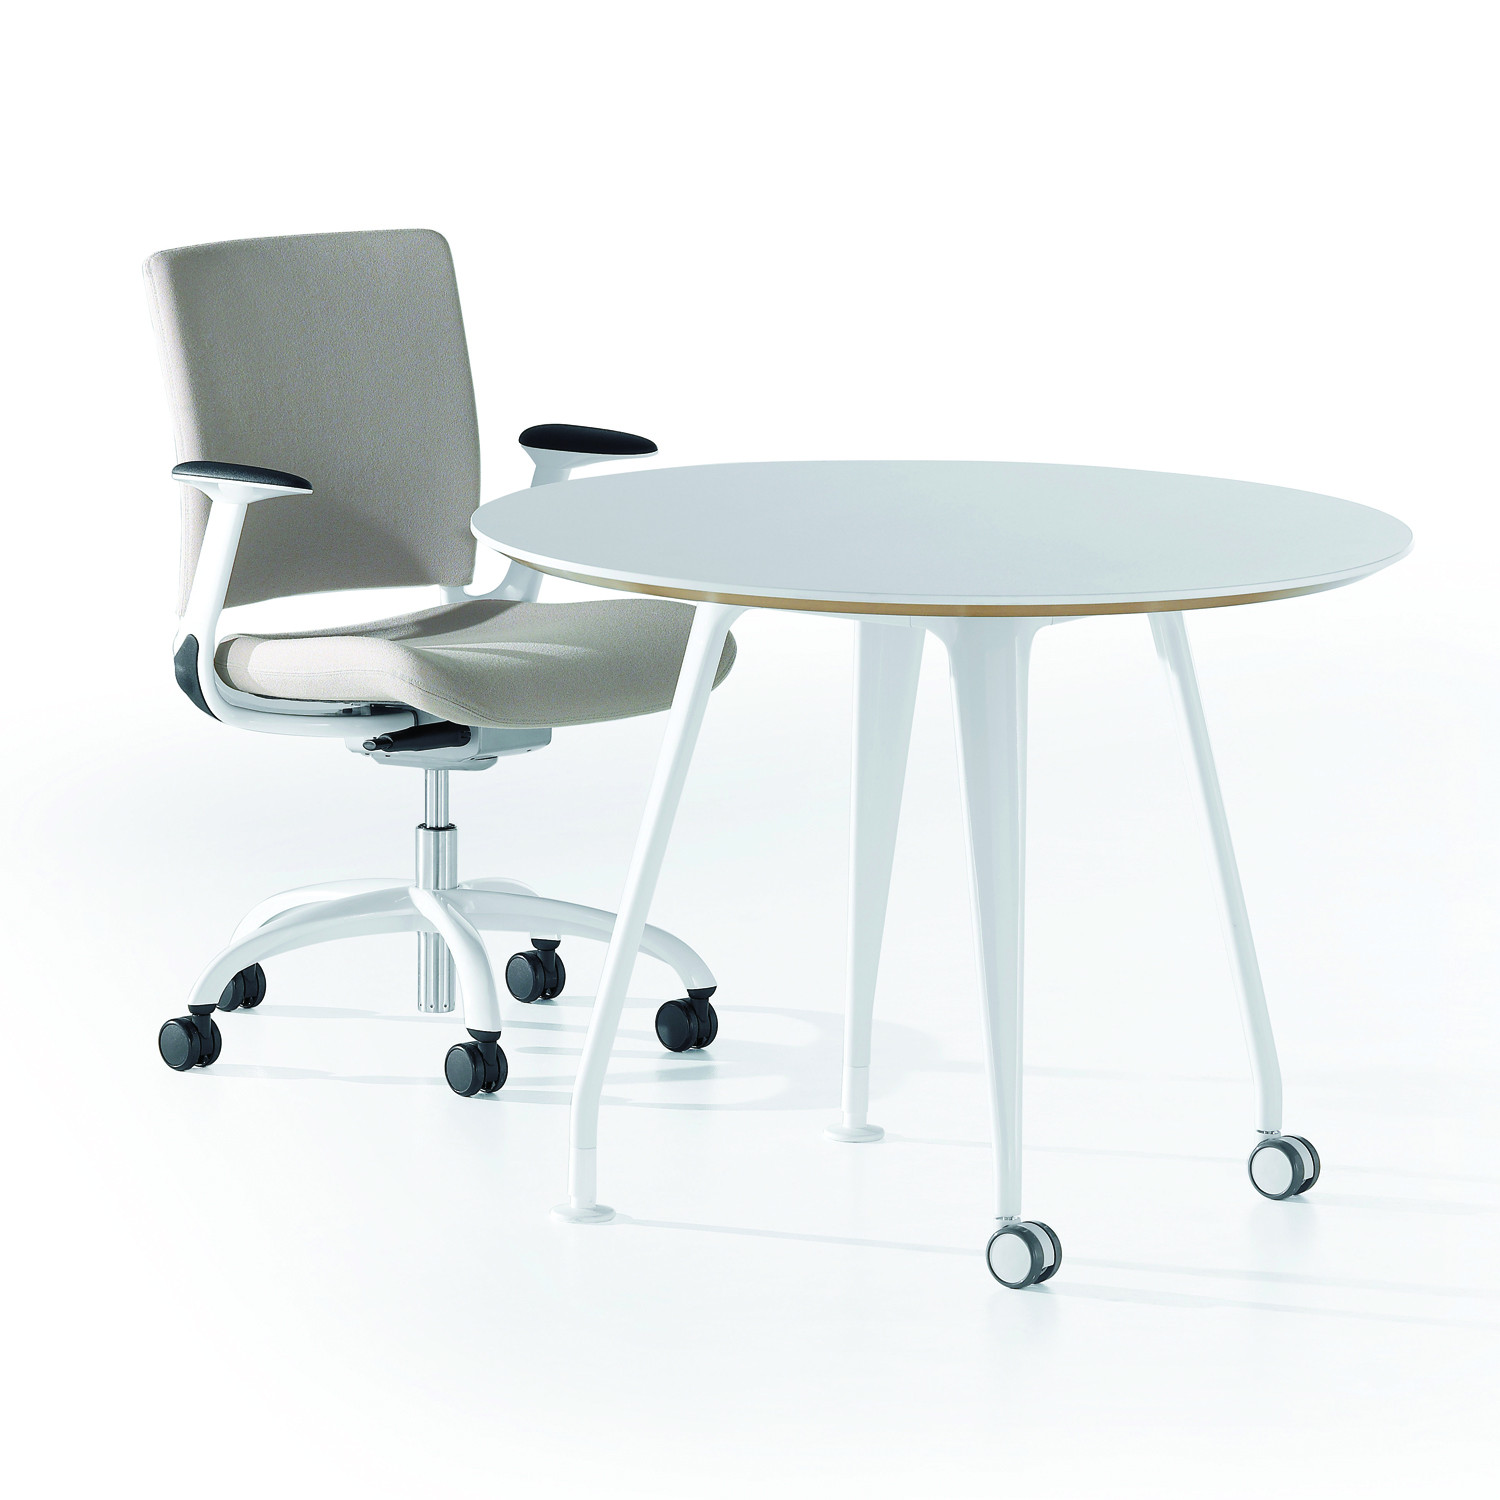 DNA Meeting Table by Verco Furniture